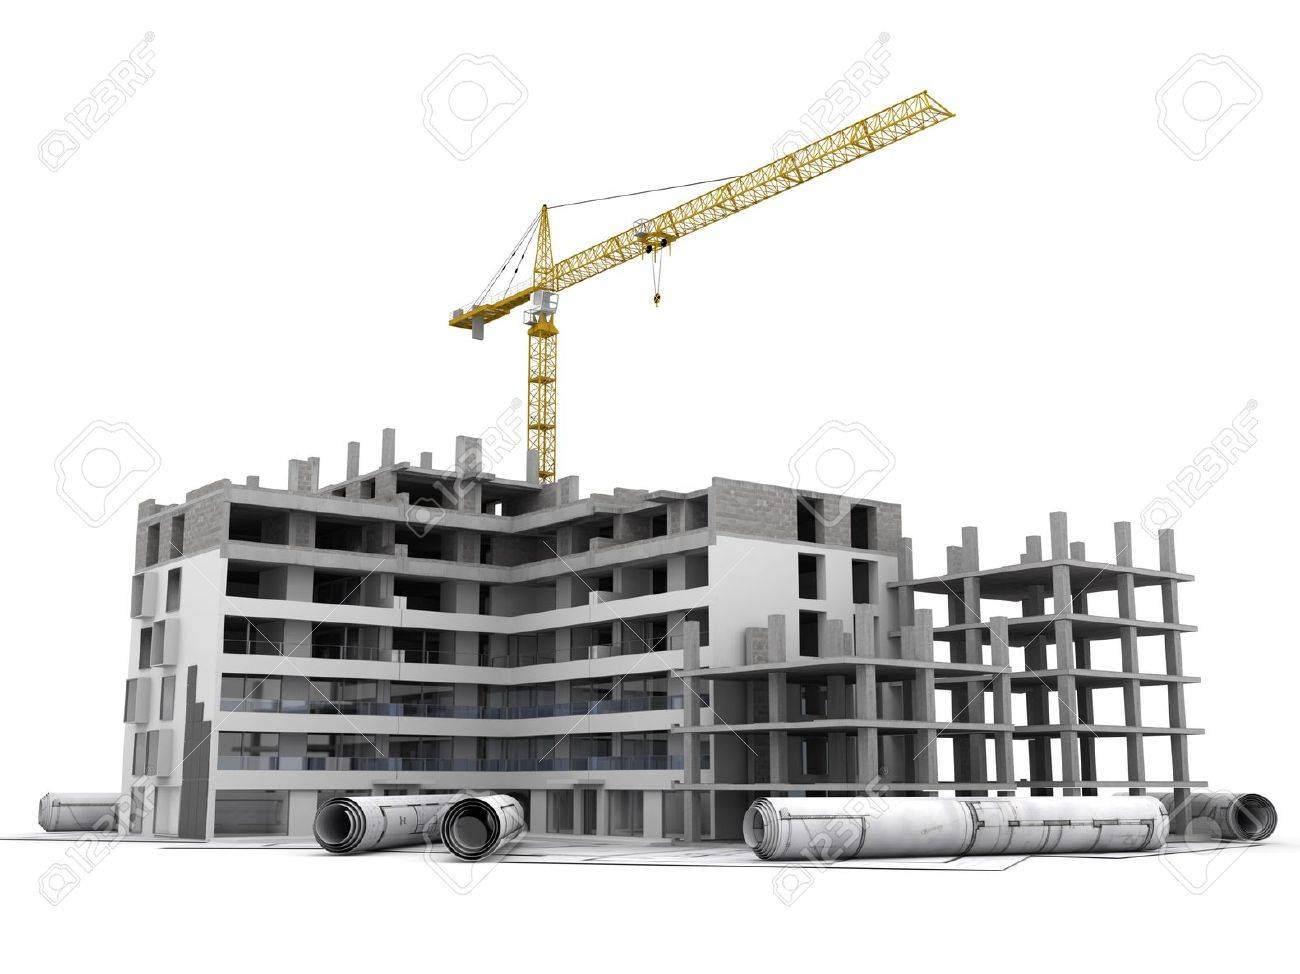 Building under construction with crane, on top of blueprints - 19362016